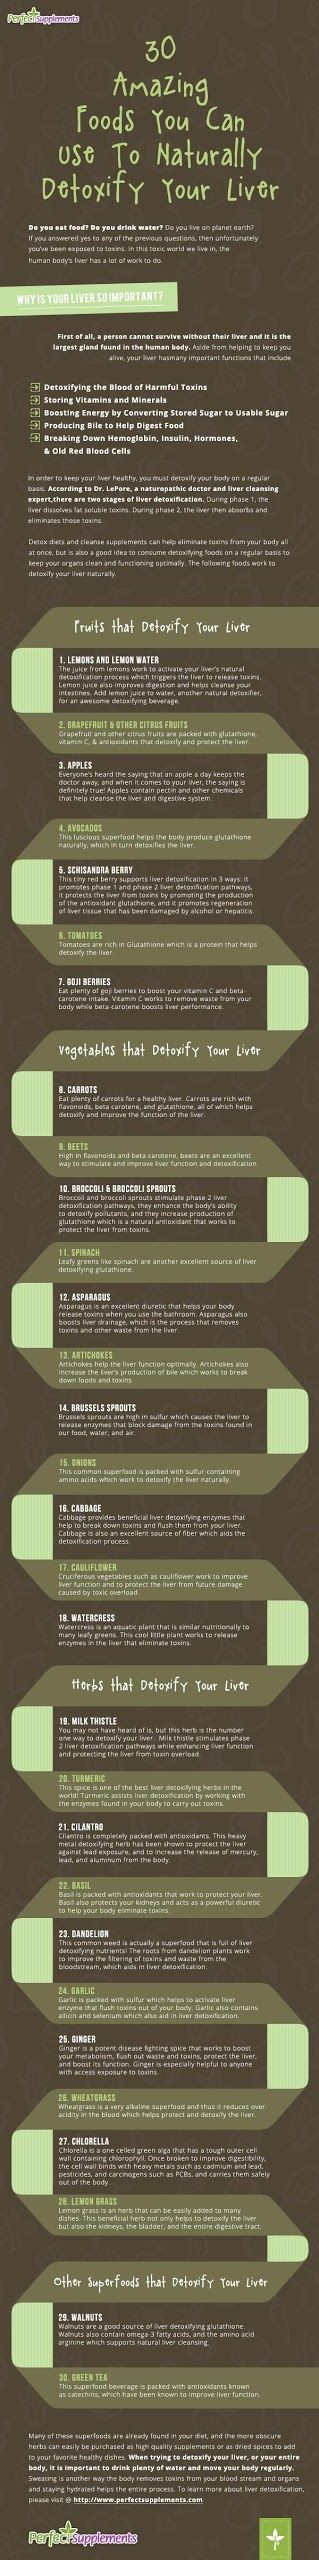 Naturally Detoxify Your Liver - 30 Best Foods to Cleanse and Support Liver Health [Infographic]